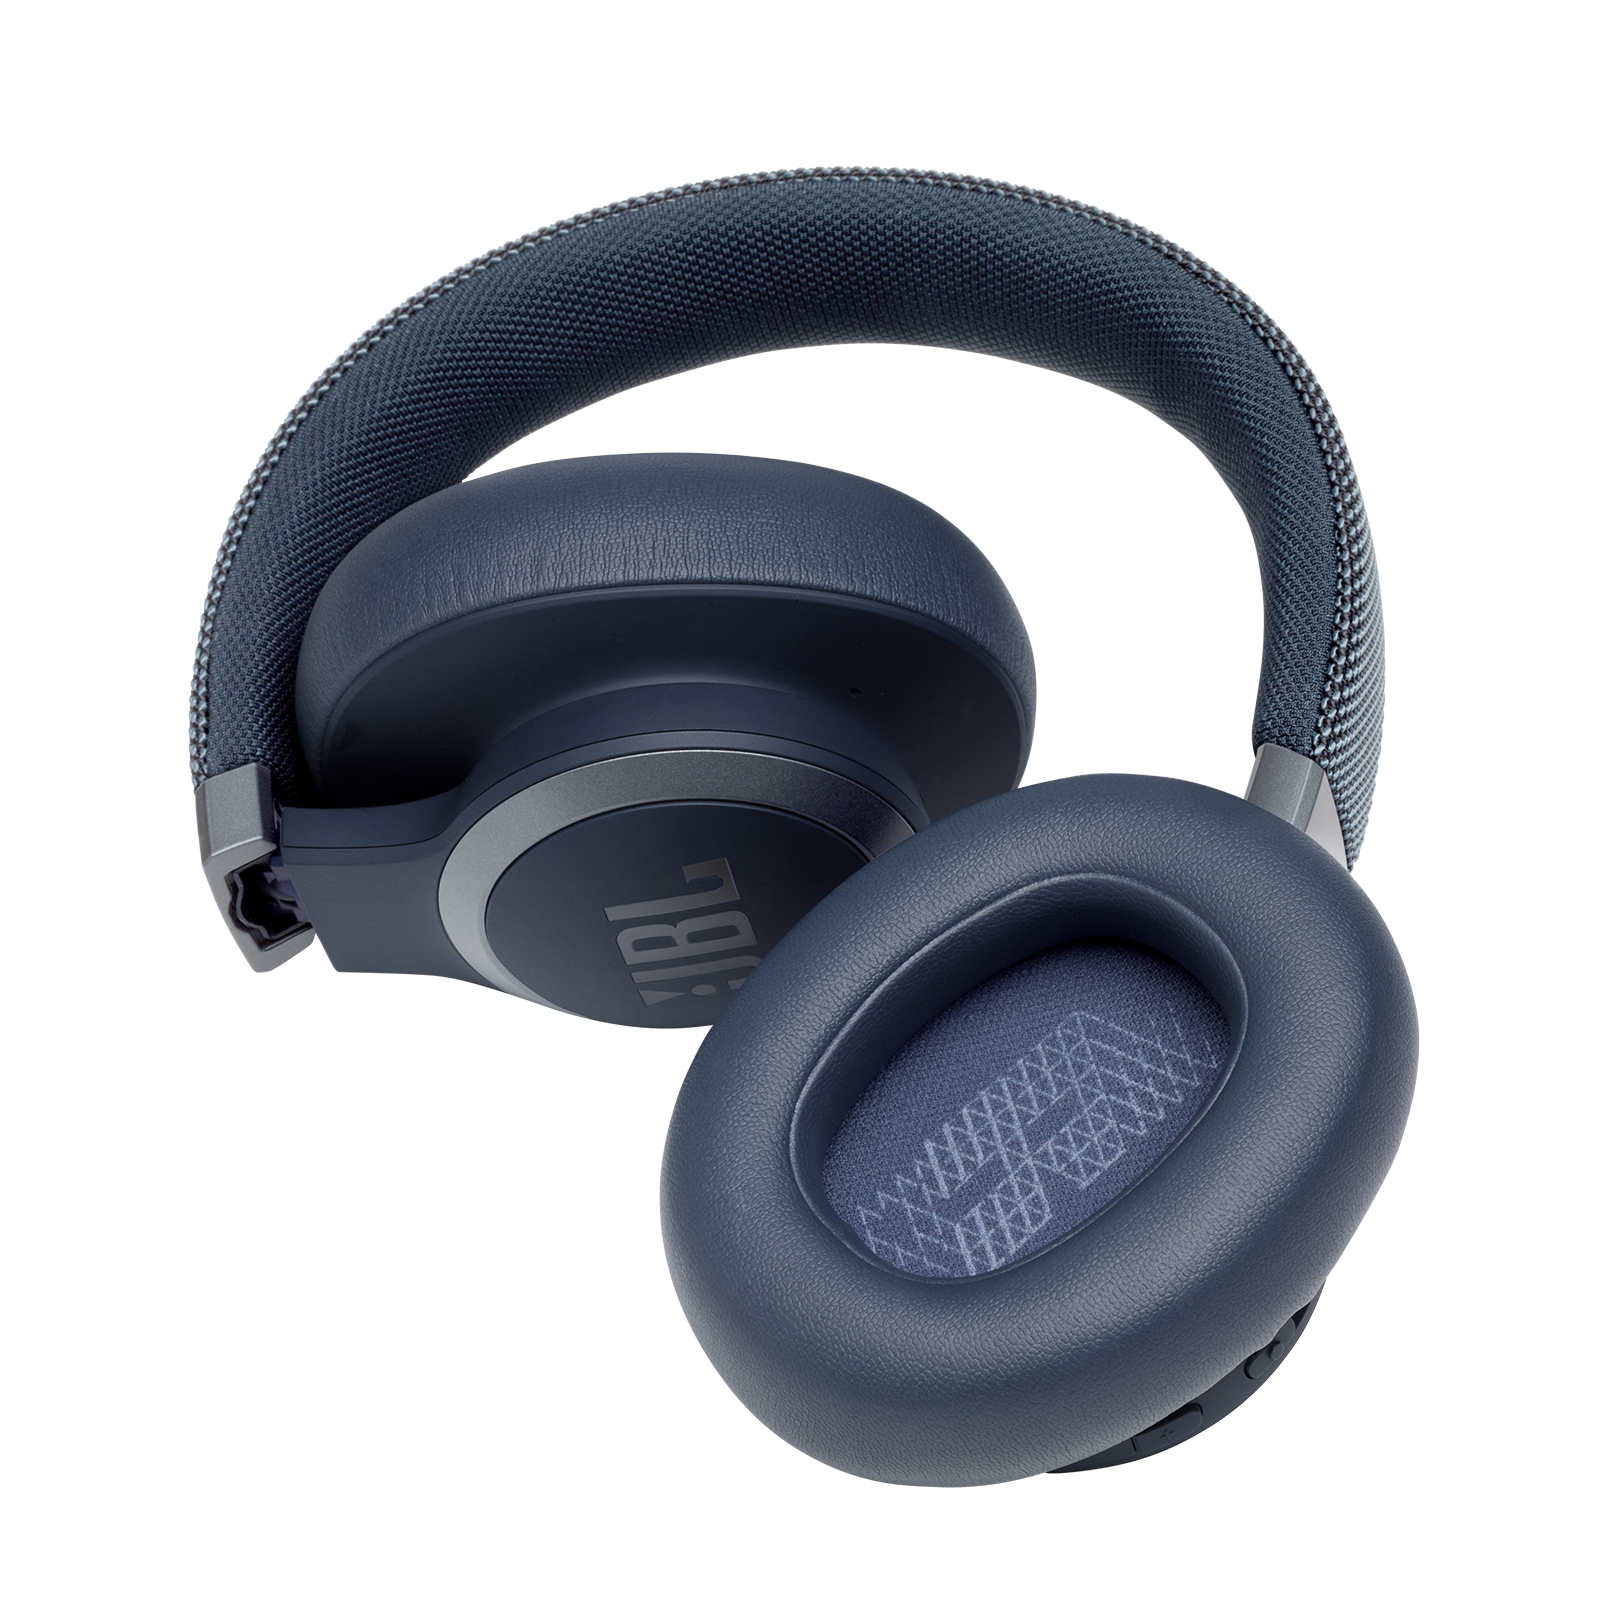 JBL LIVE 650BTNC - Blue - Wireless Over-Ear Noise-Cancelling Headphones - Detailshot 7